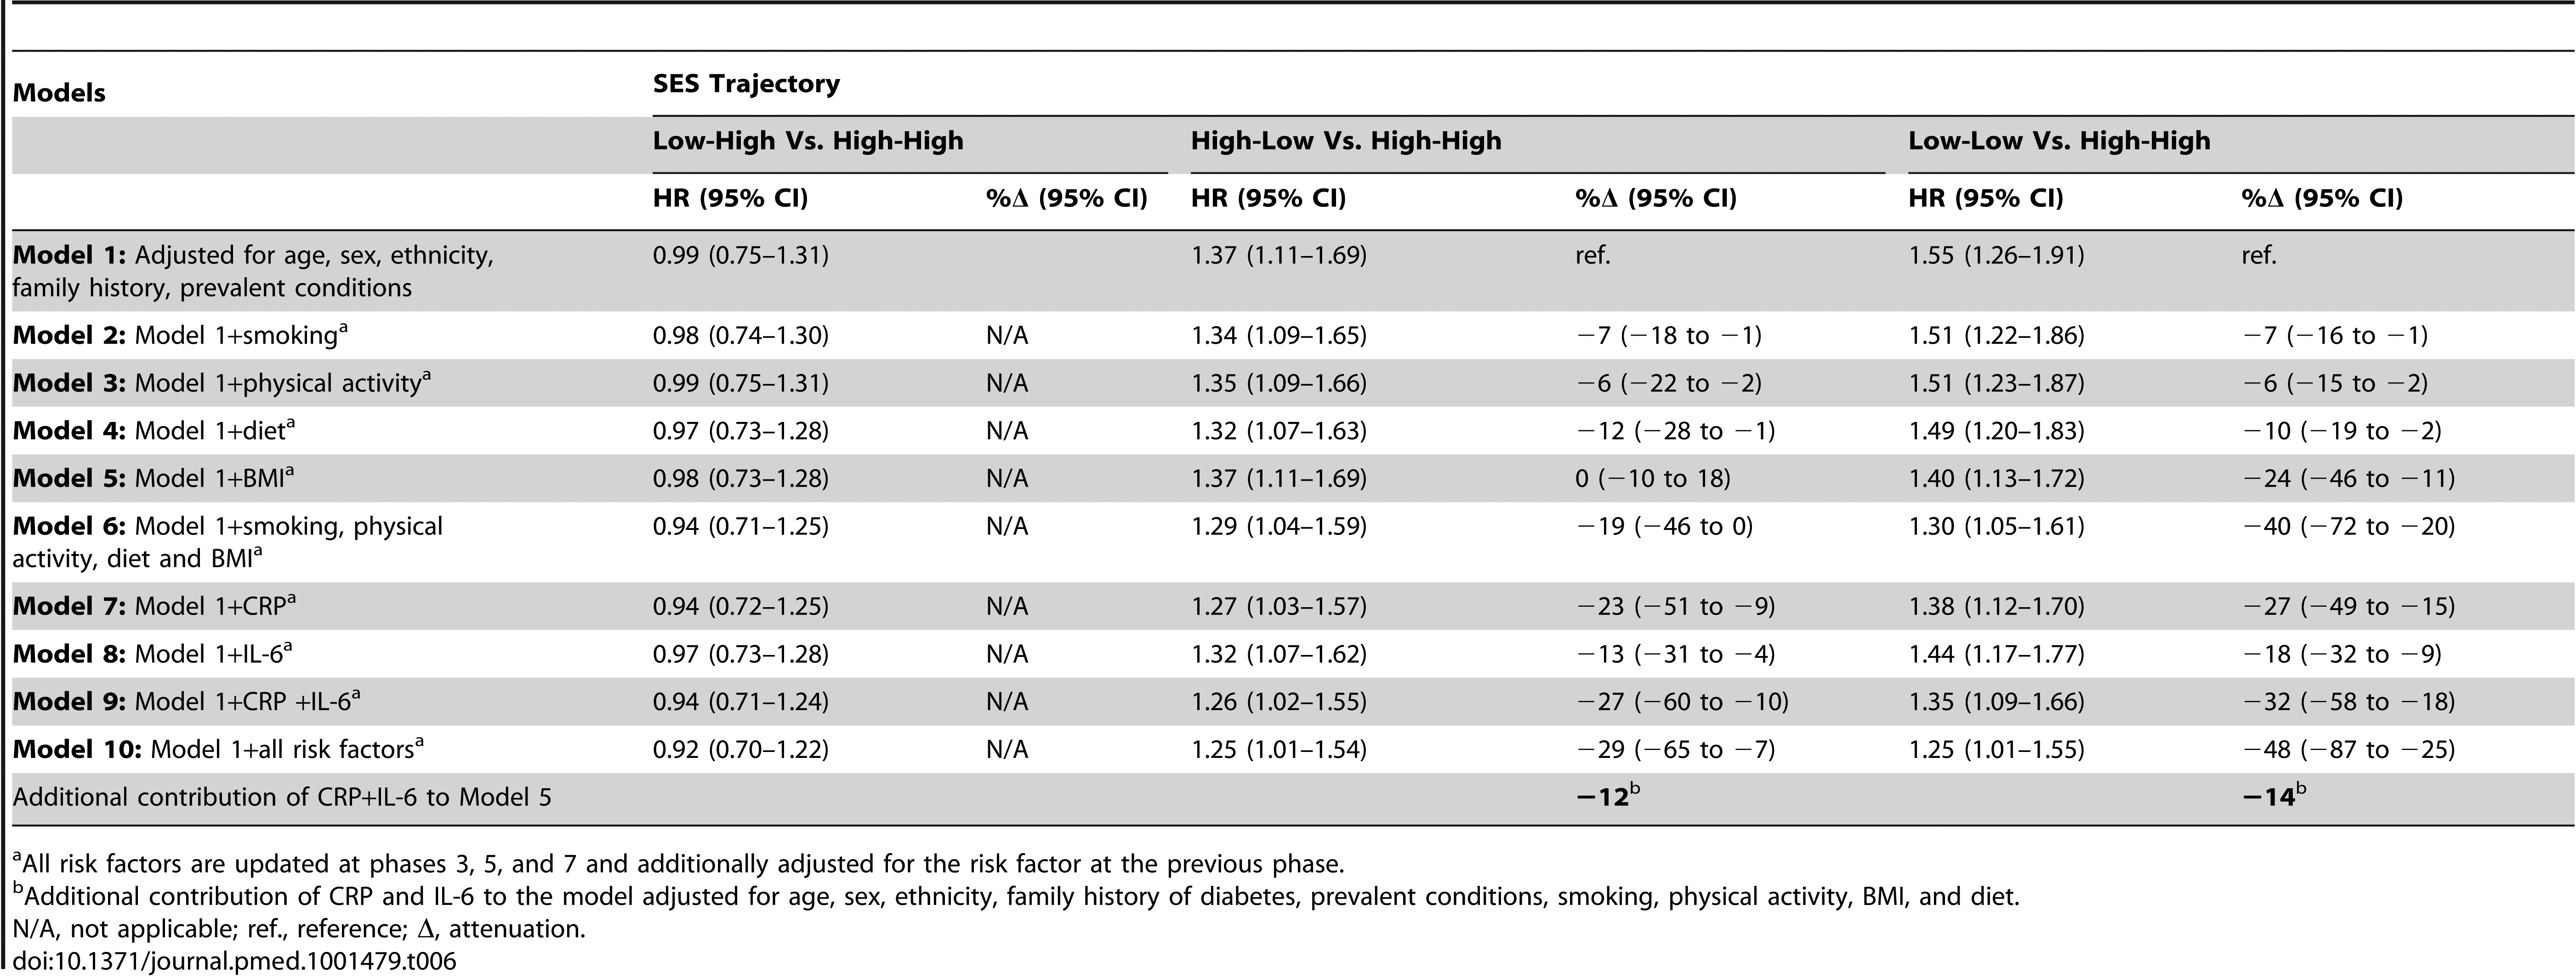 Hazard ratios (95% CI) for the association of lifecourse socioeconomic trajectories with type 2 diabetes incidence (<i>n</i>=6,387; 731 incident diabetes cases).